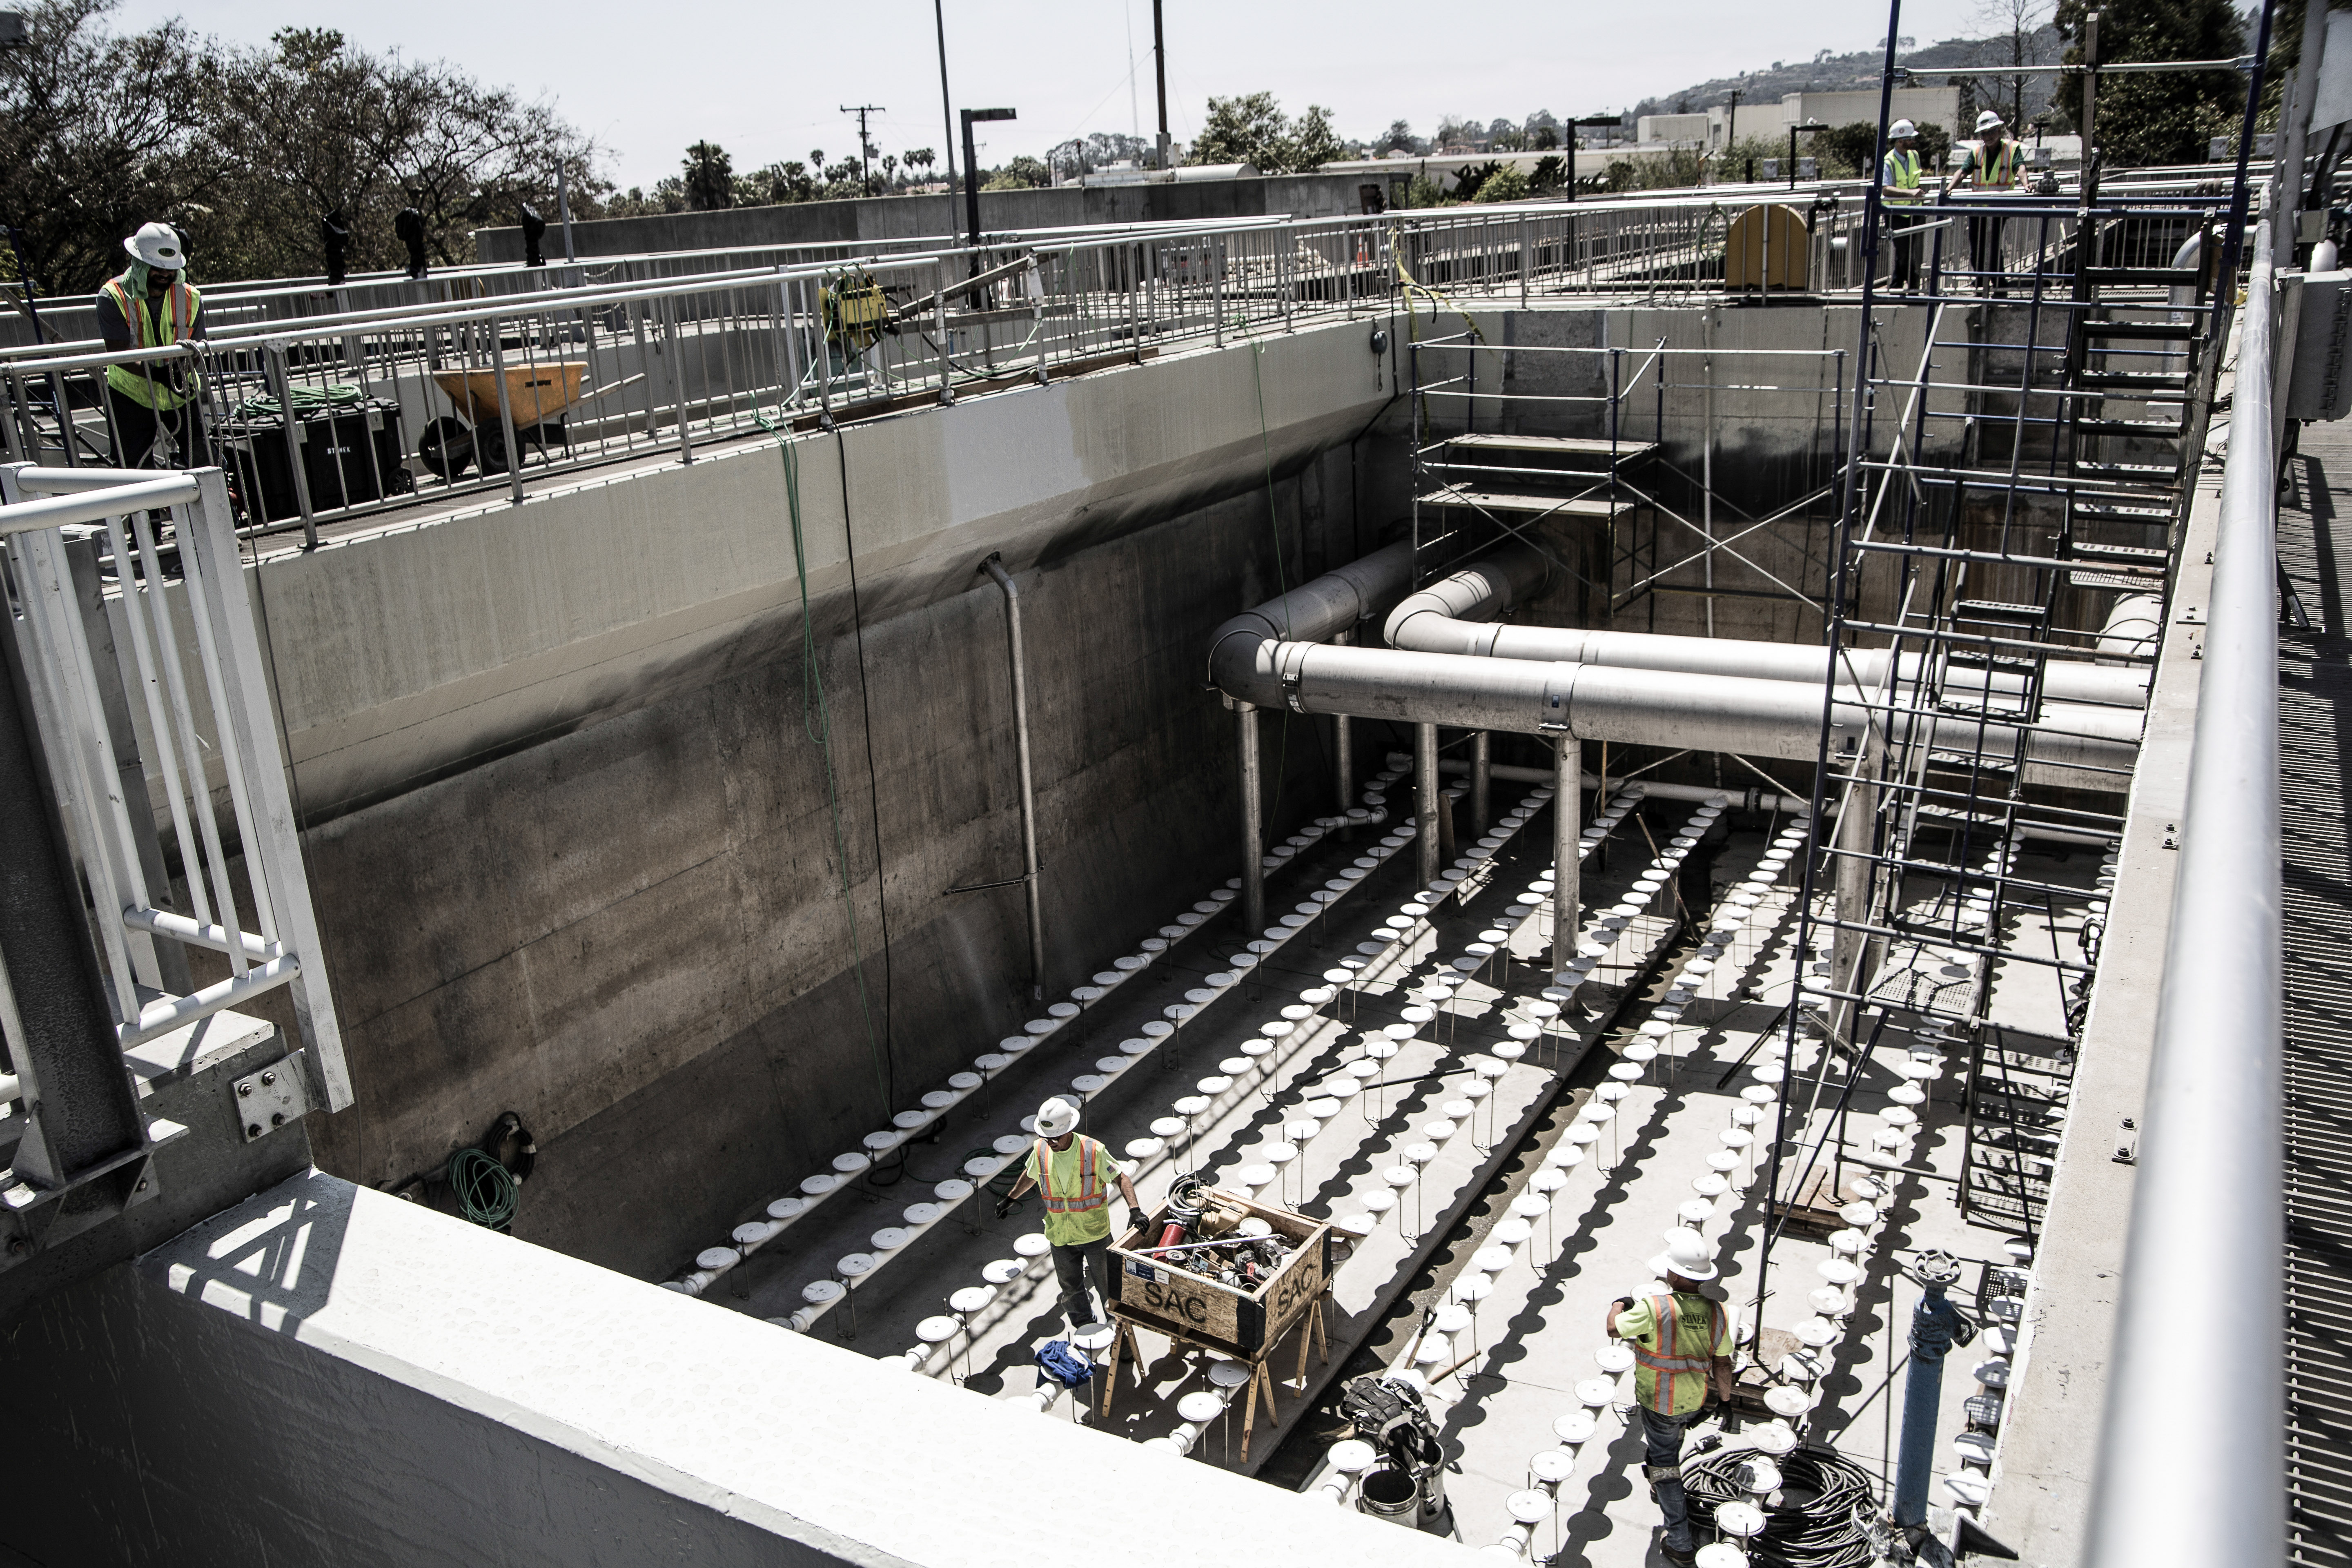 waste water treatment plant owner training video and final photography